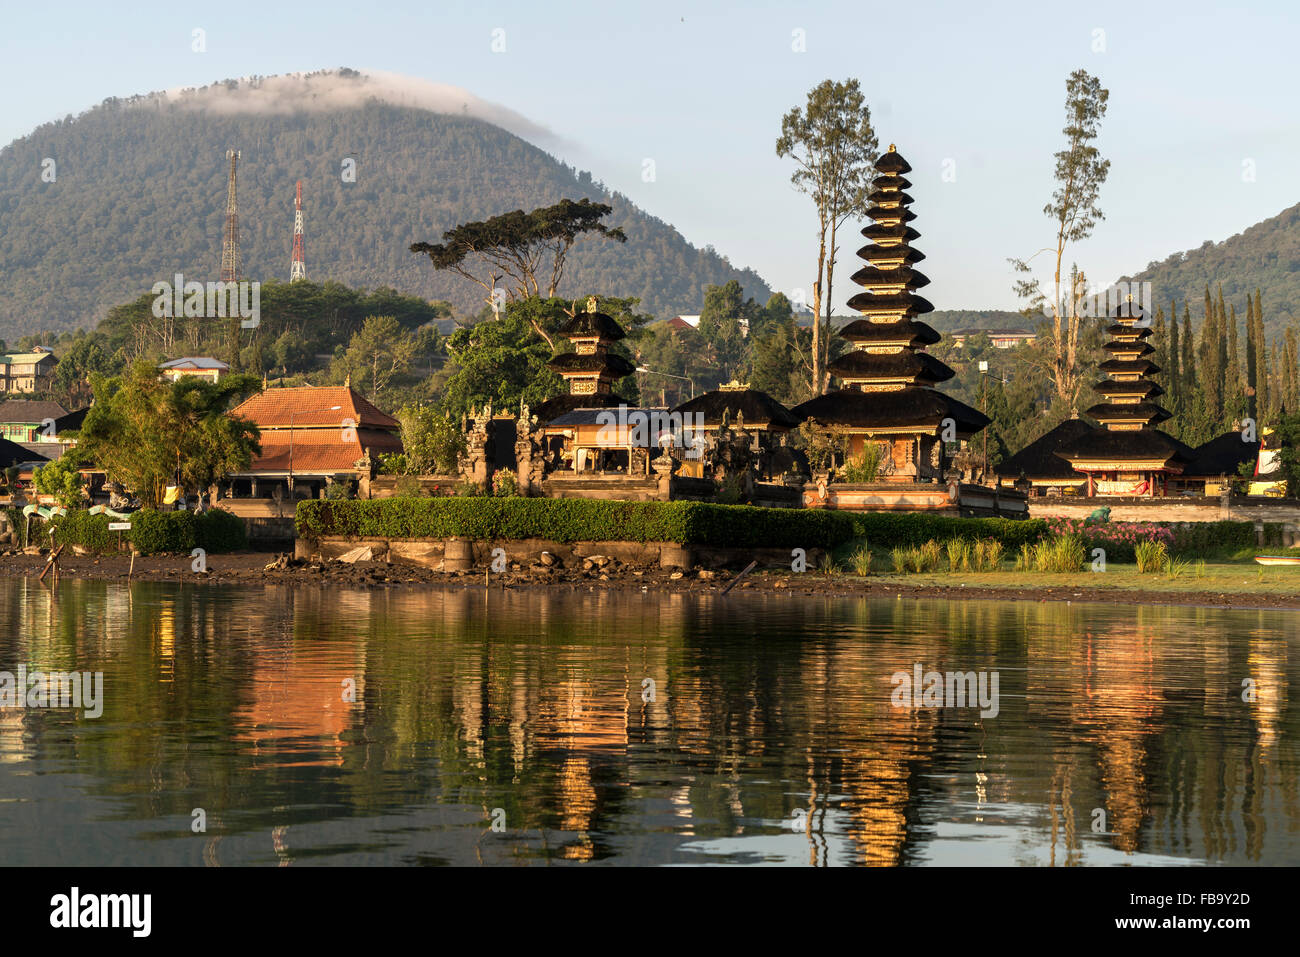 the major Shivaite and water temple Pura Ulun Danu Bratan on the shores of Lake Bratan, Bedugul, Bali, Indonesia Stock Photo